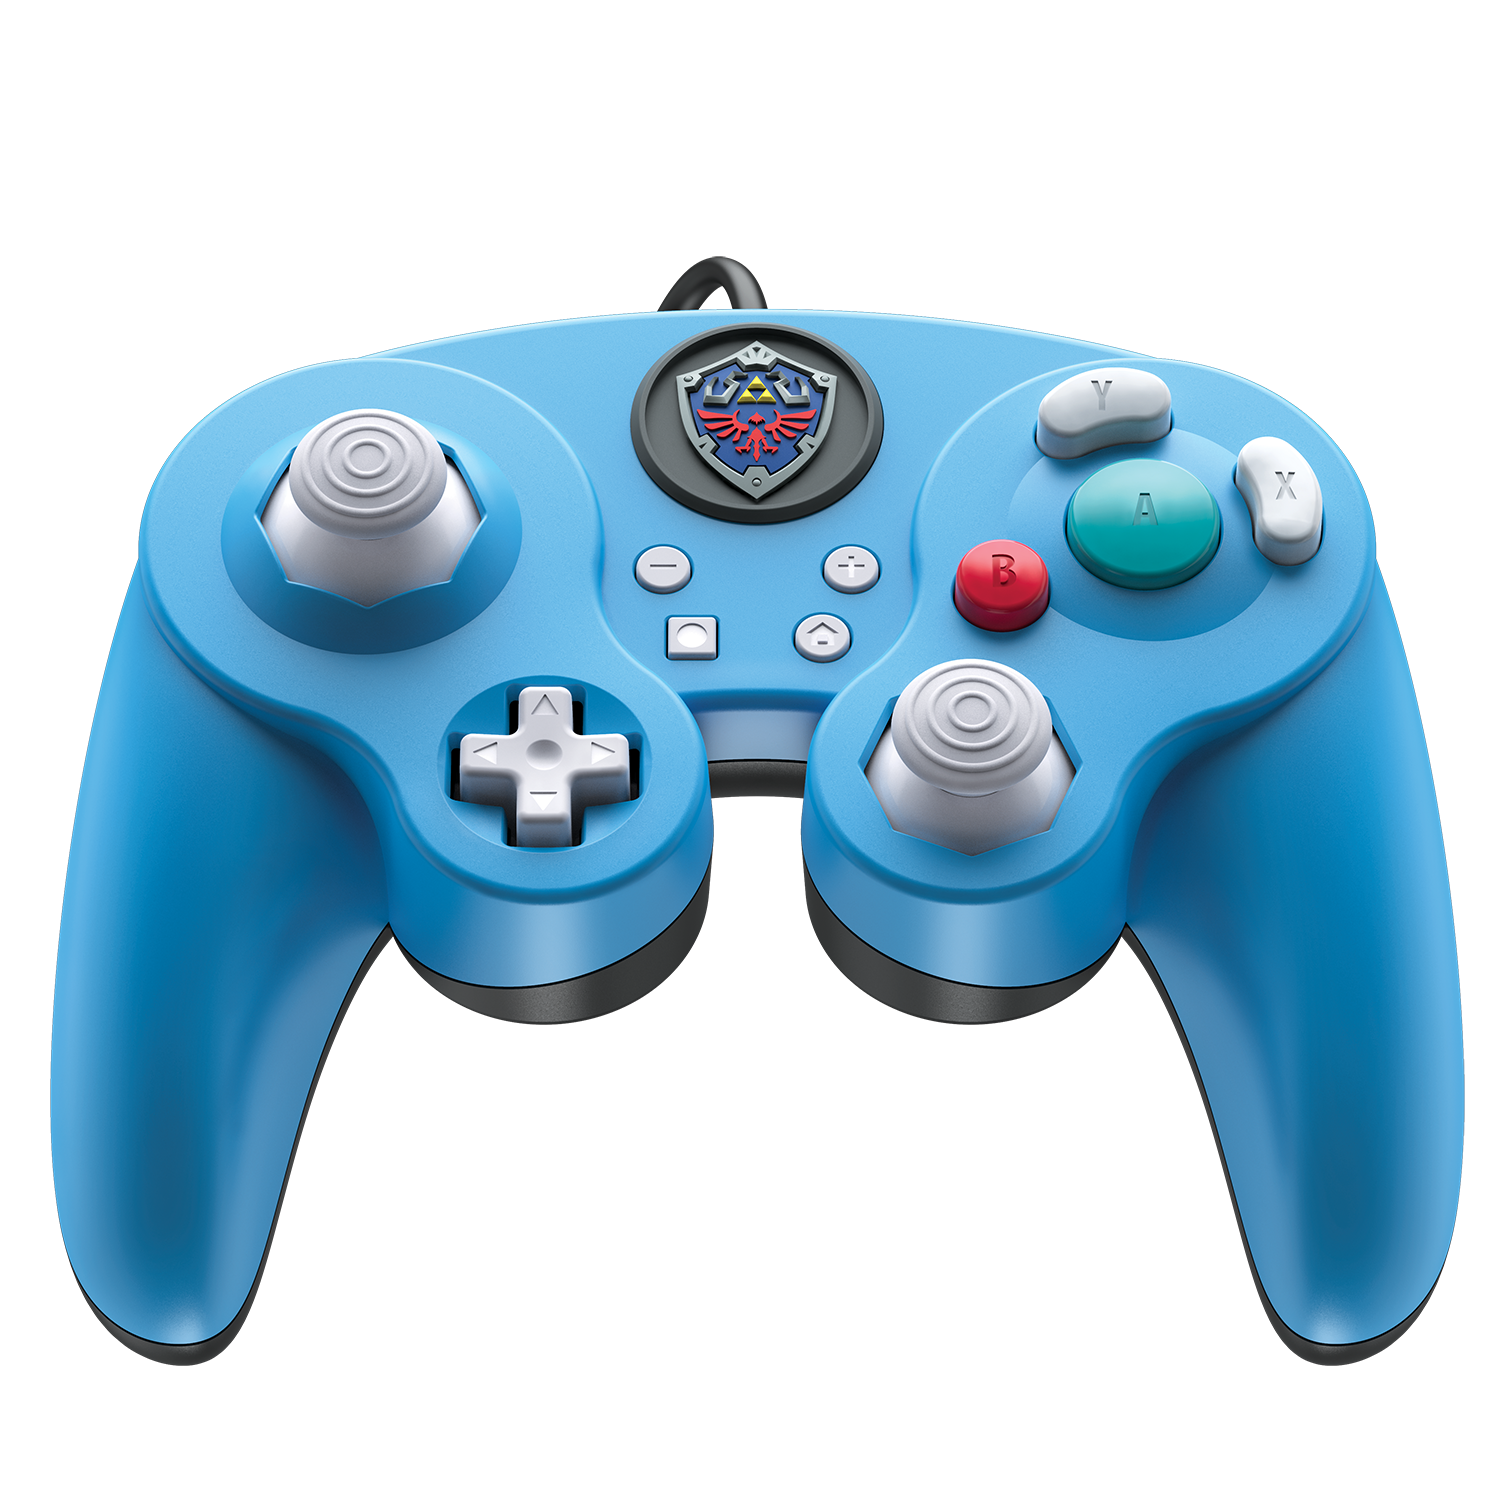 Nintendo Switch is getting a GameCube-styled Smash Bros. controller ...